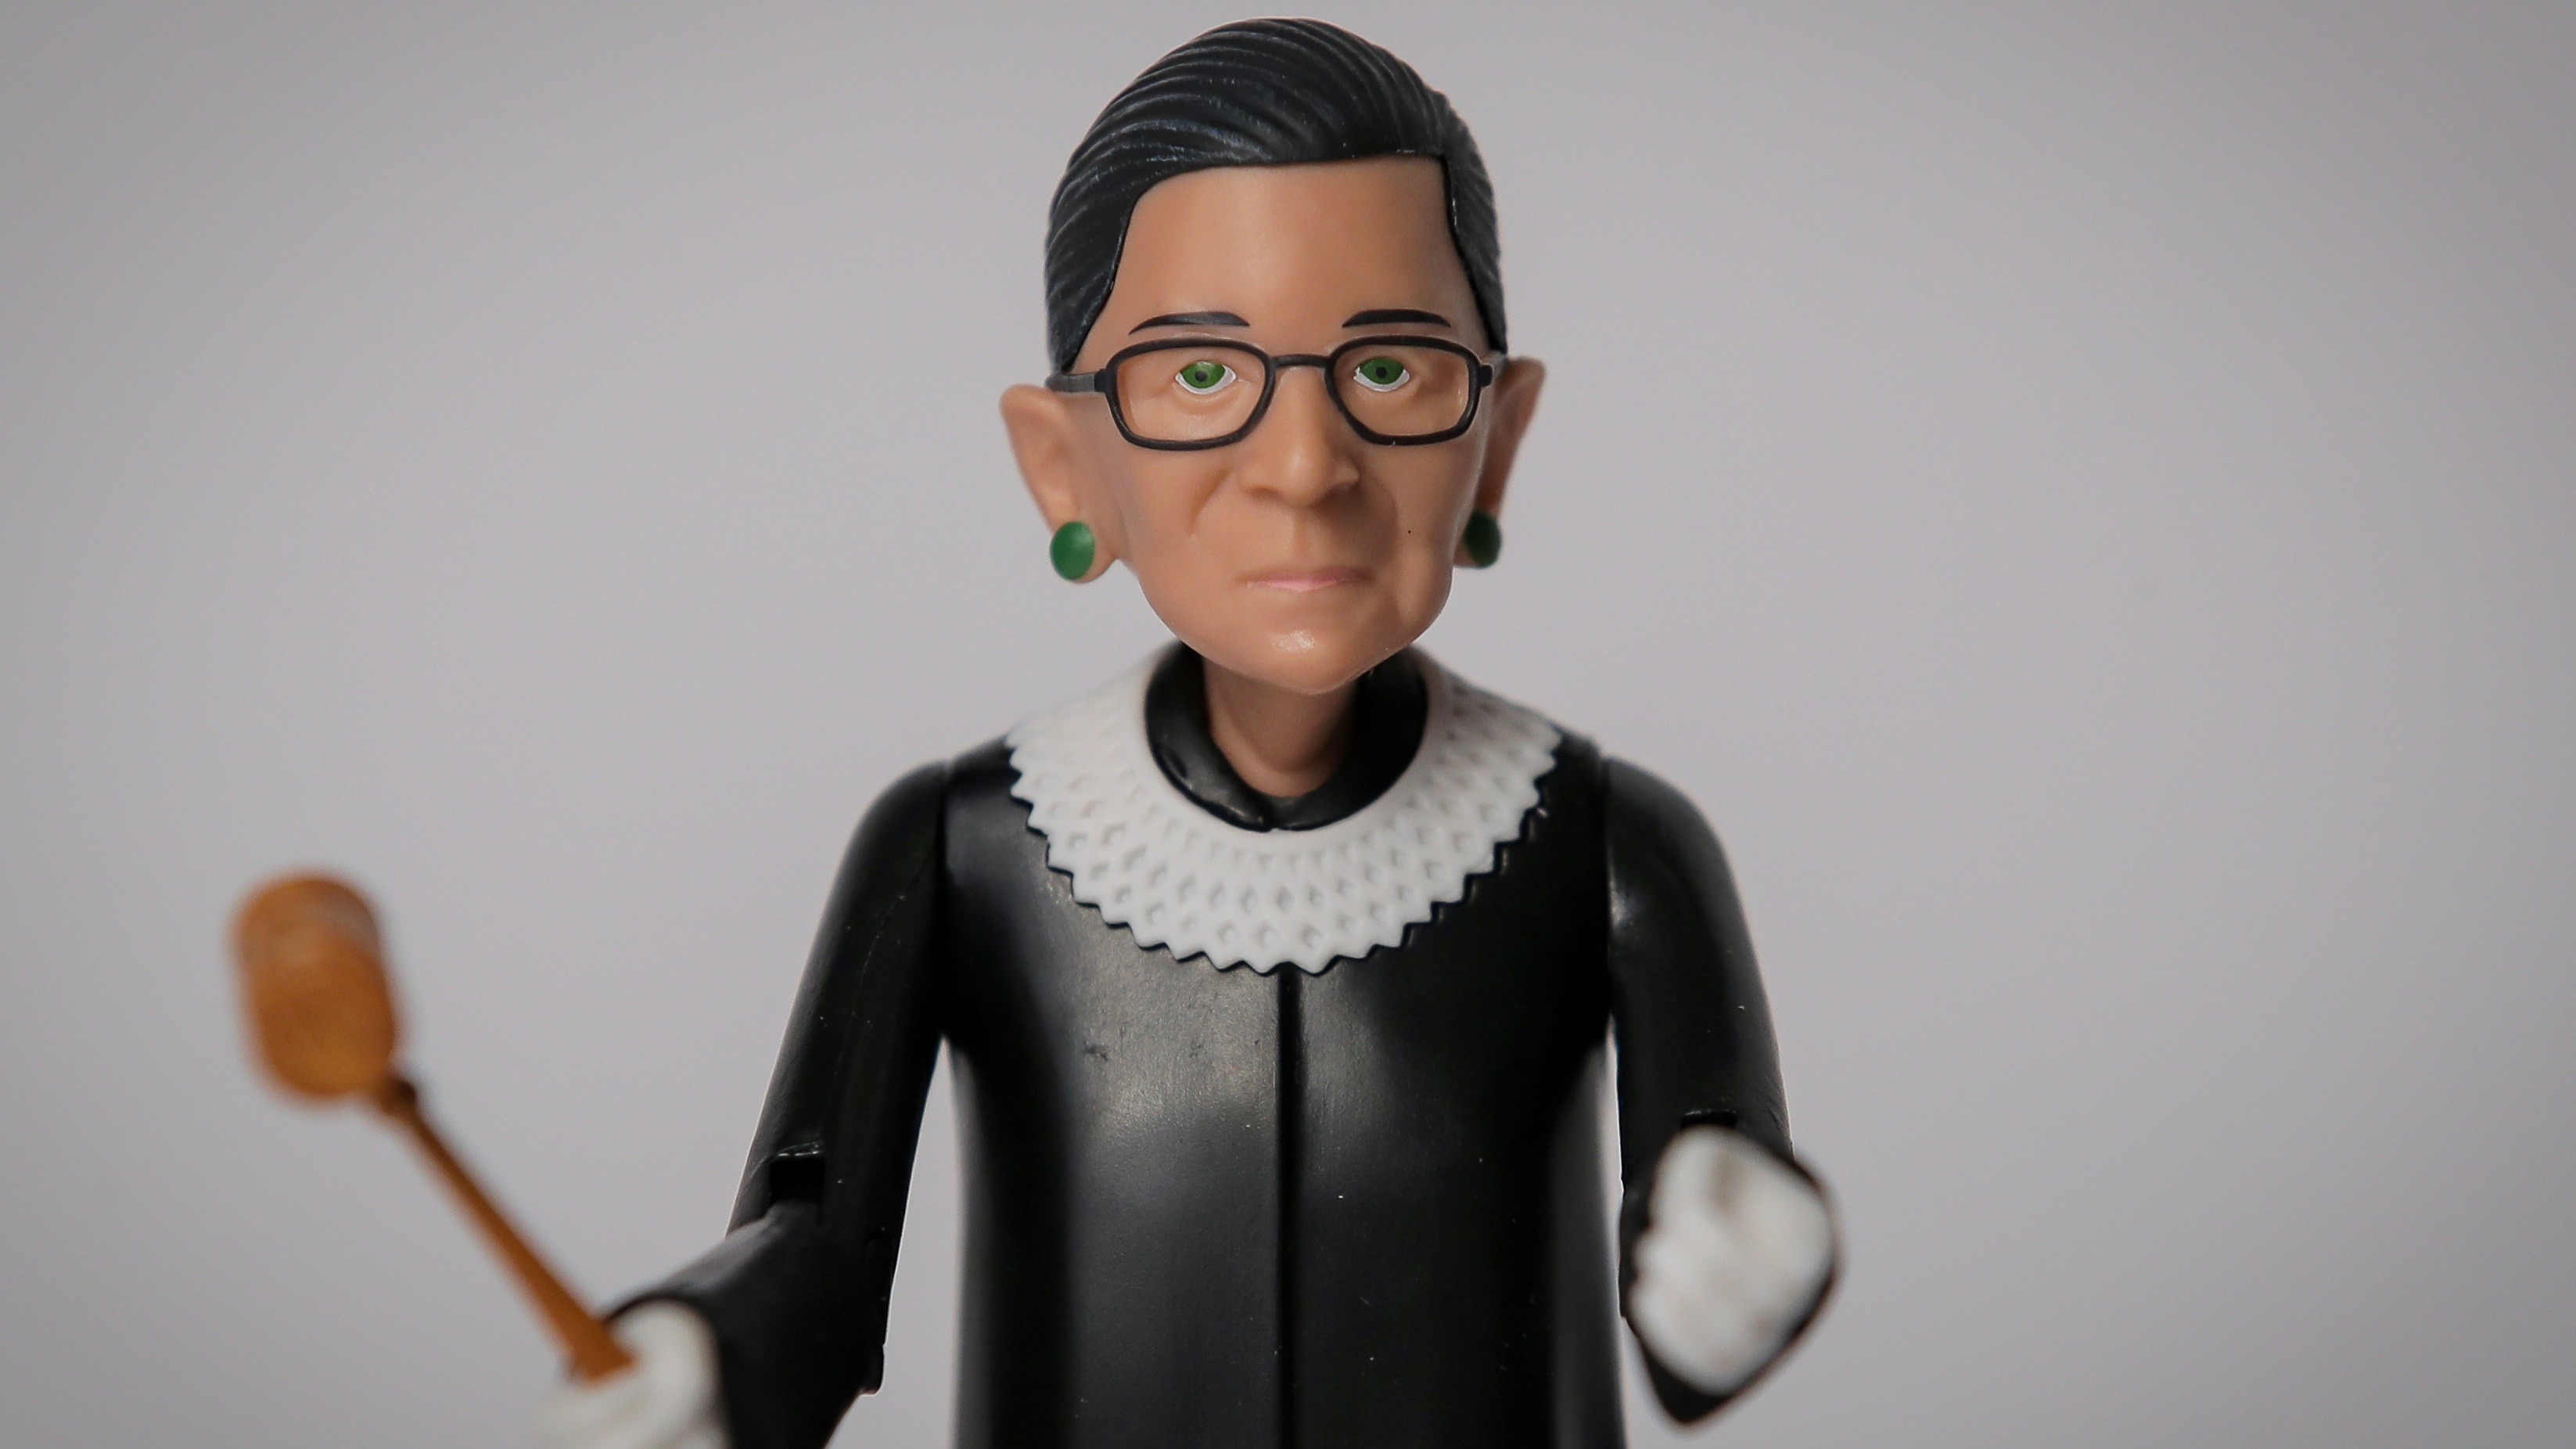 Justice Ruth Bader Ginsburg action figure.